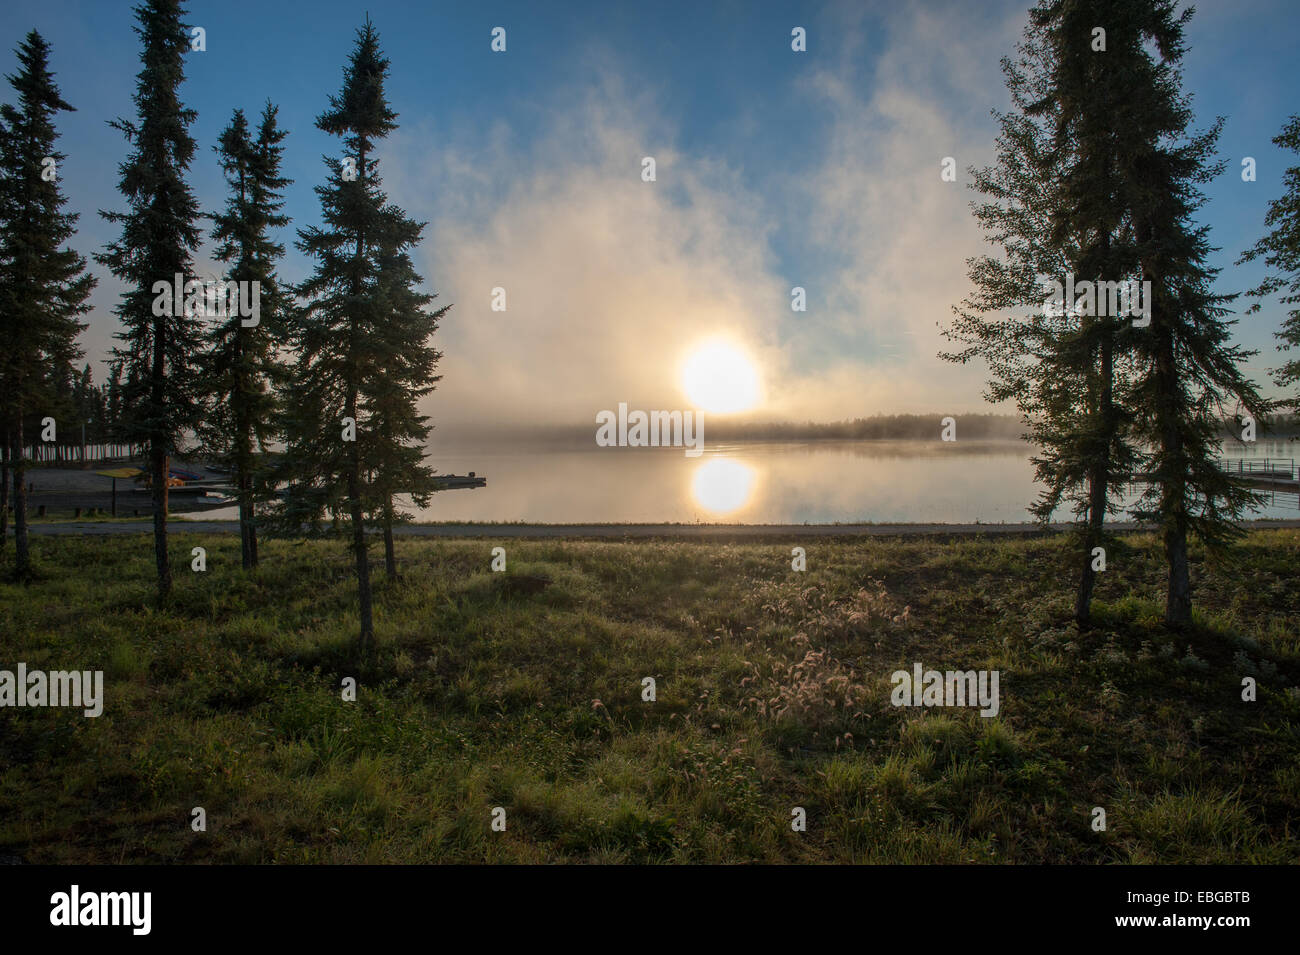 Sunset over Chena Lakes recreational area, Alaska - Stock Image